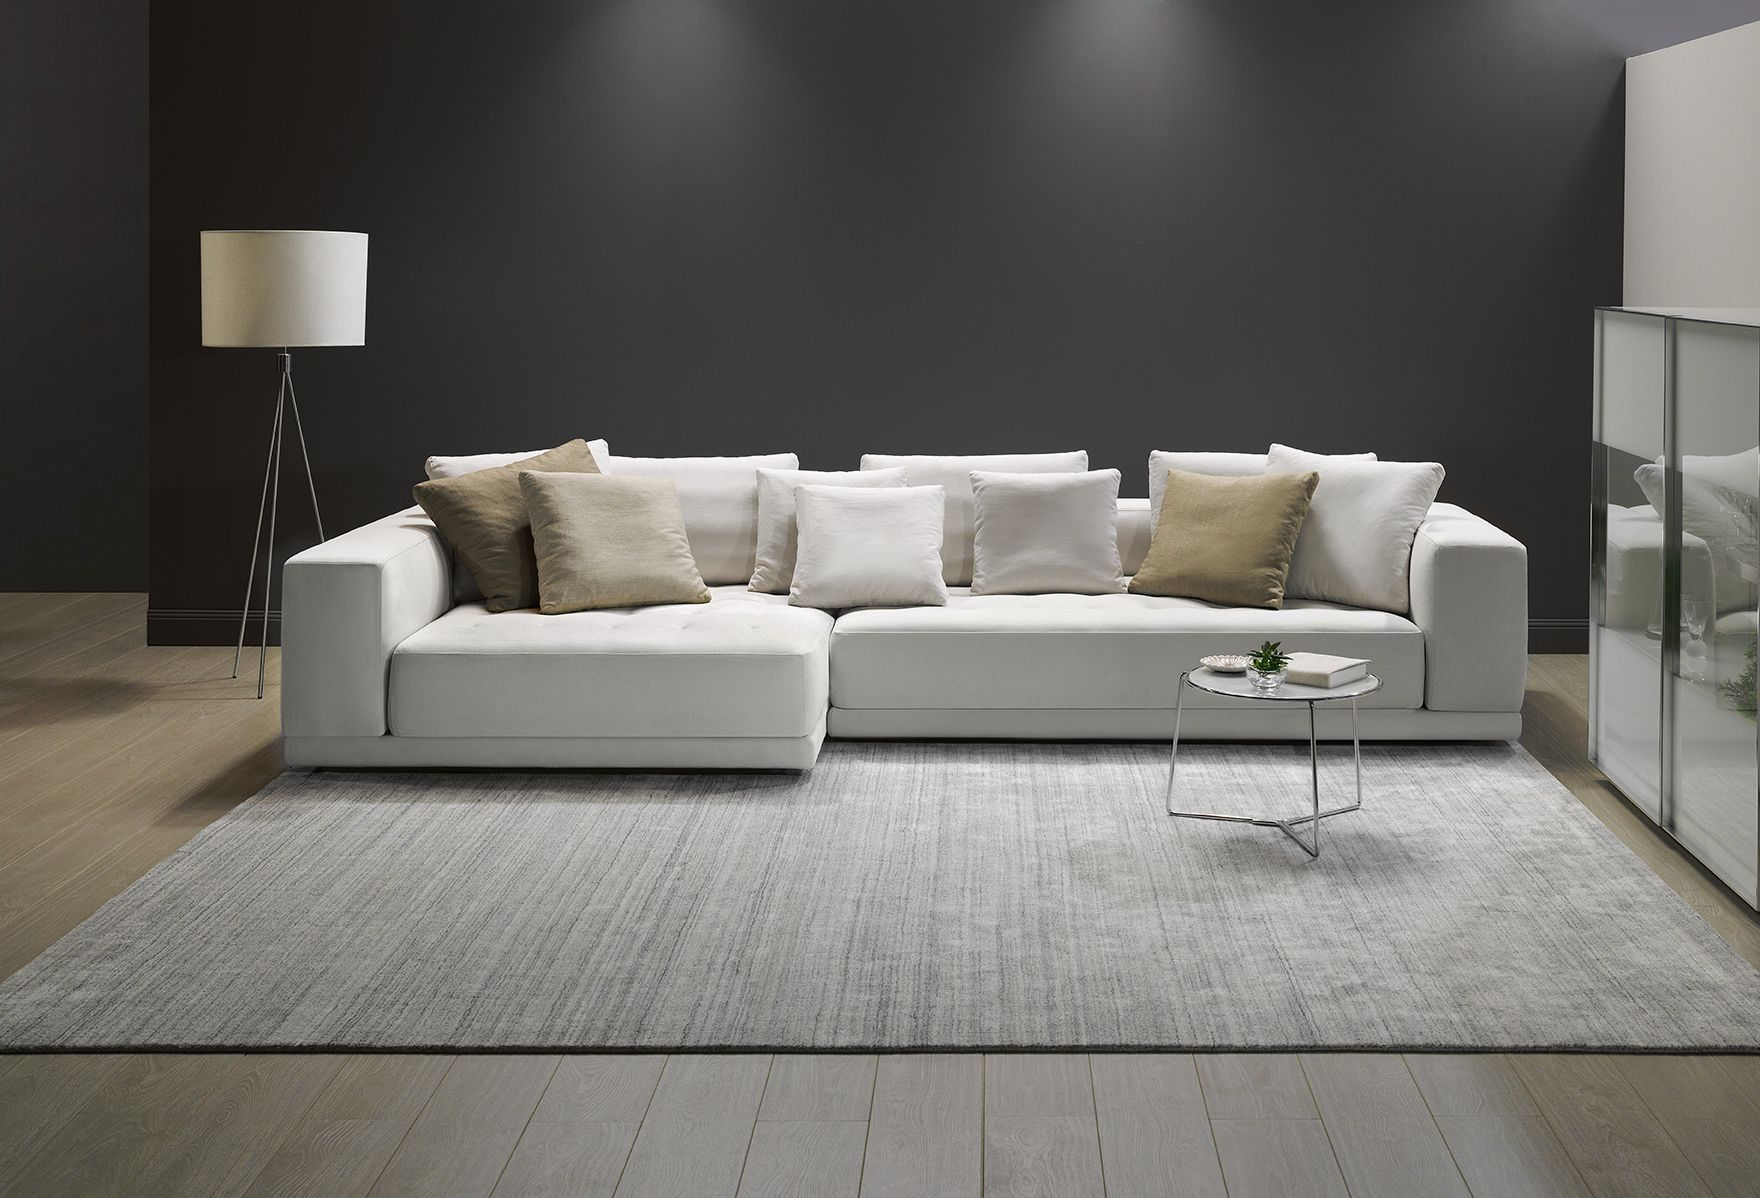 King Furniture s Felix Sofa has been designed to give you the